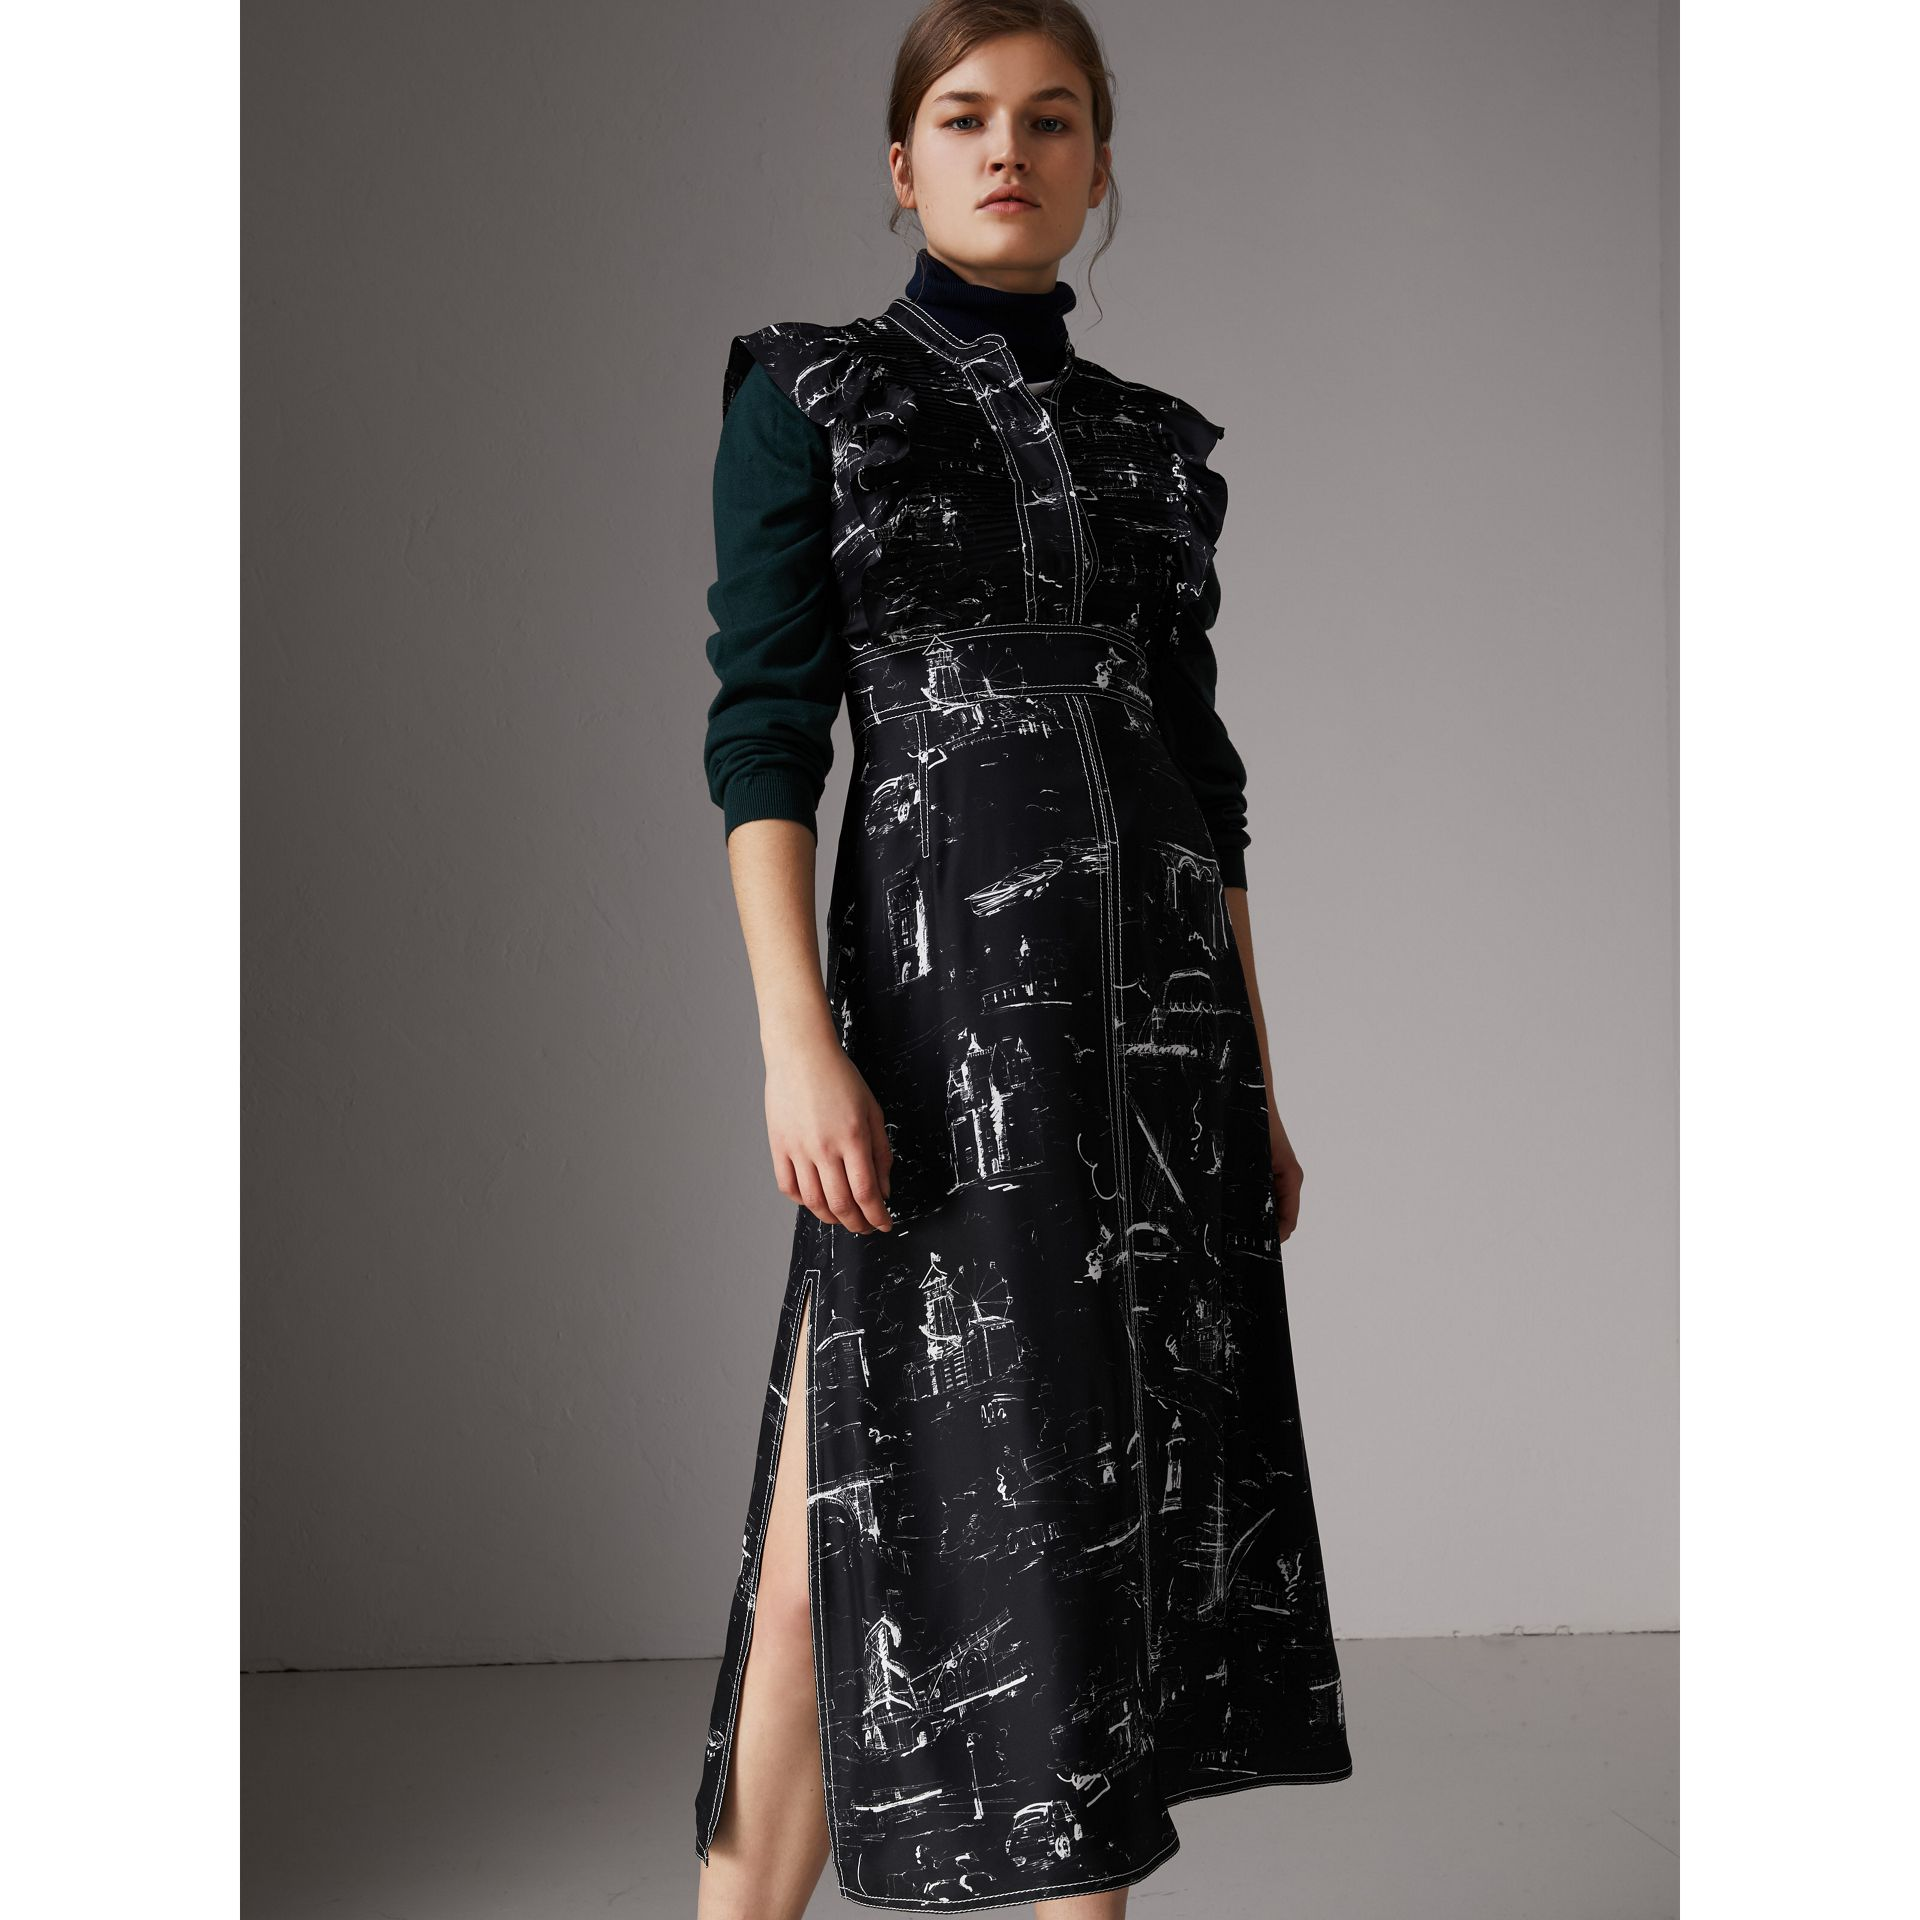 Ruffle Detail Landmark Print Silk Dress in Black - Women | Burberry - gallery image 3